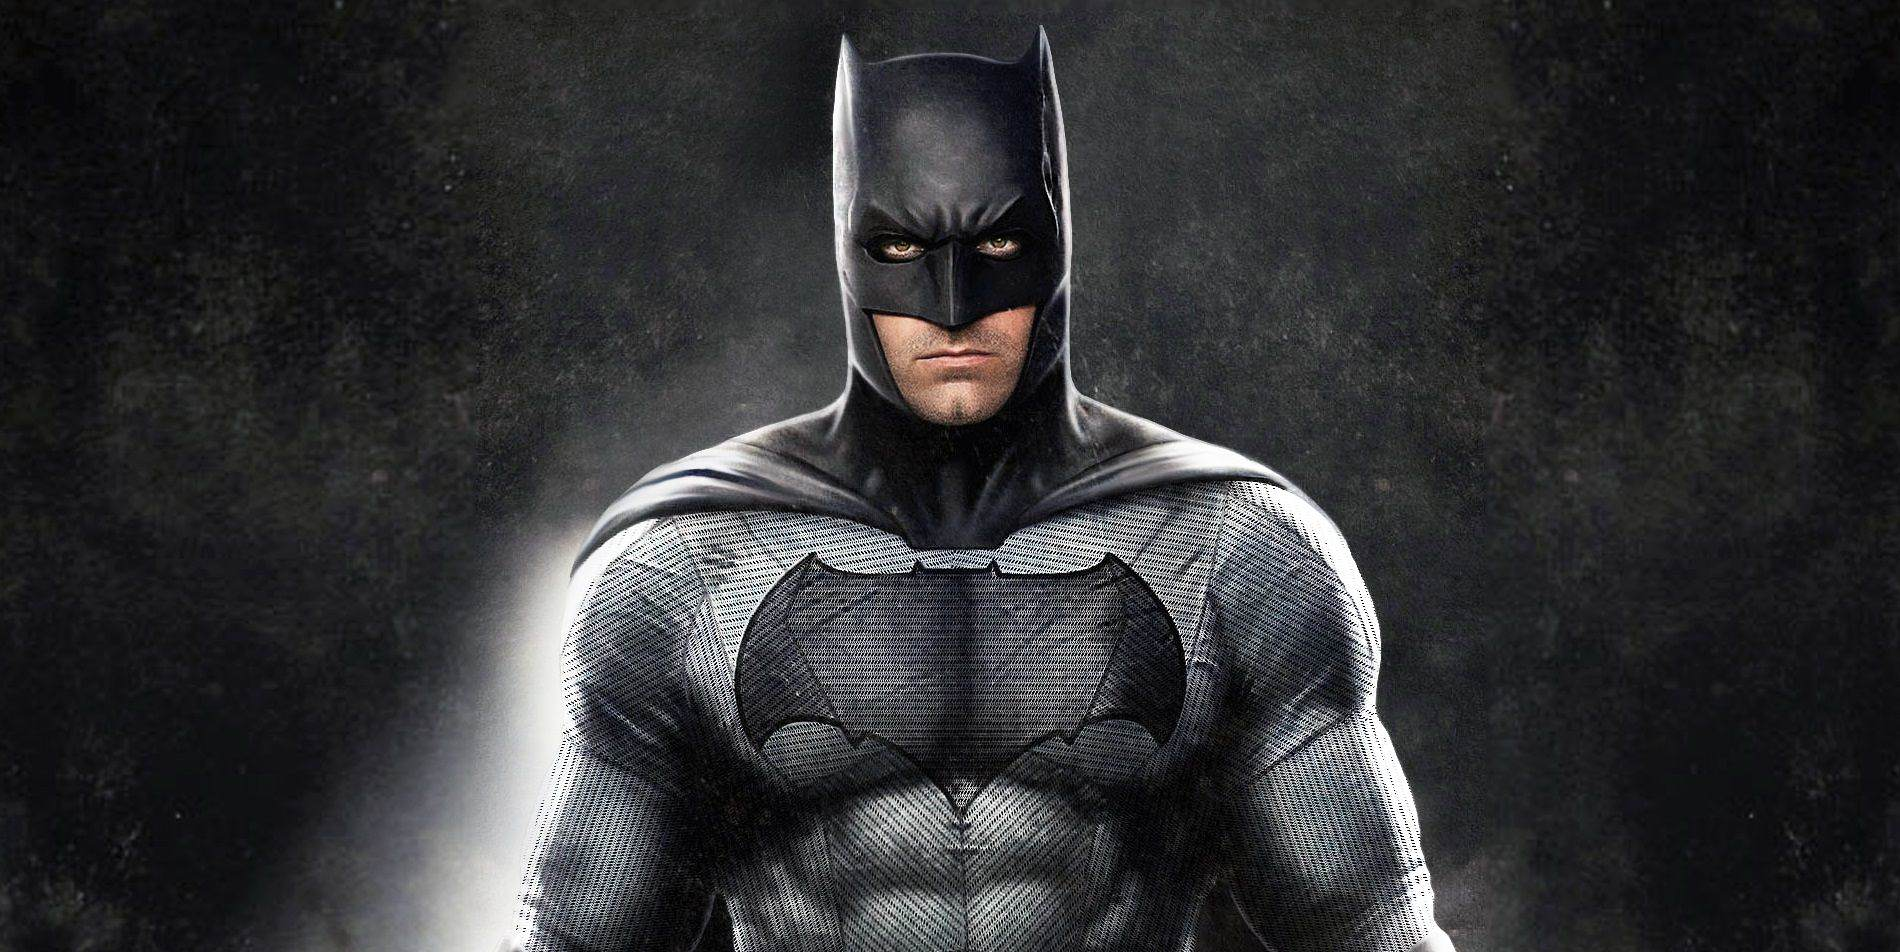 revealed ben affleck s batman is the biggest plot twist since darth vader as anakin skywa 657615 Dark Souls 3 Promotes Upcoming Release With Sad Ben Affleck